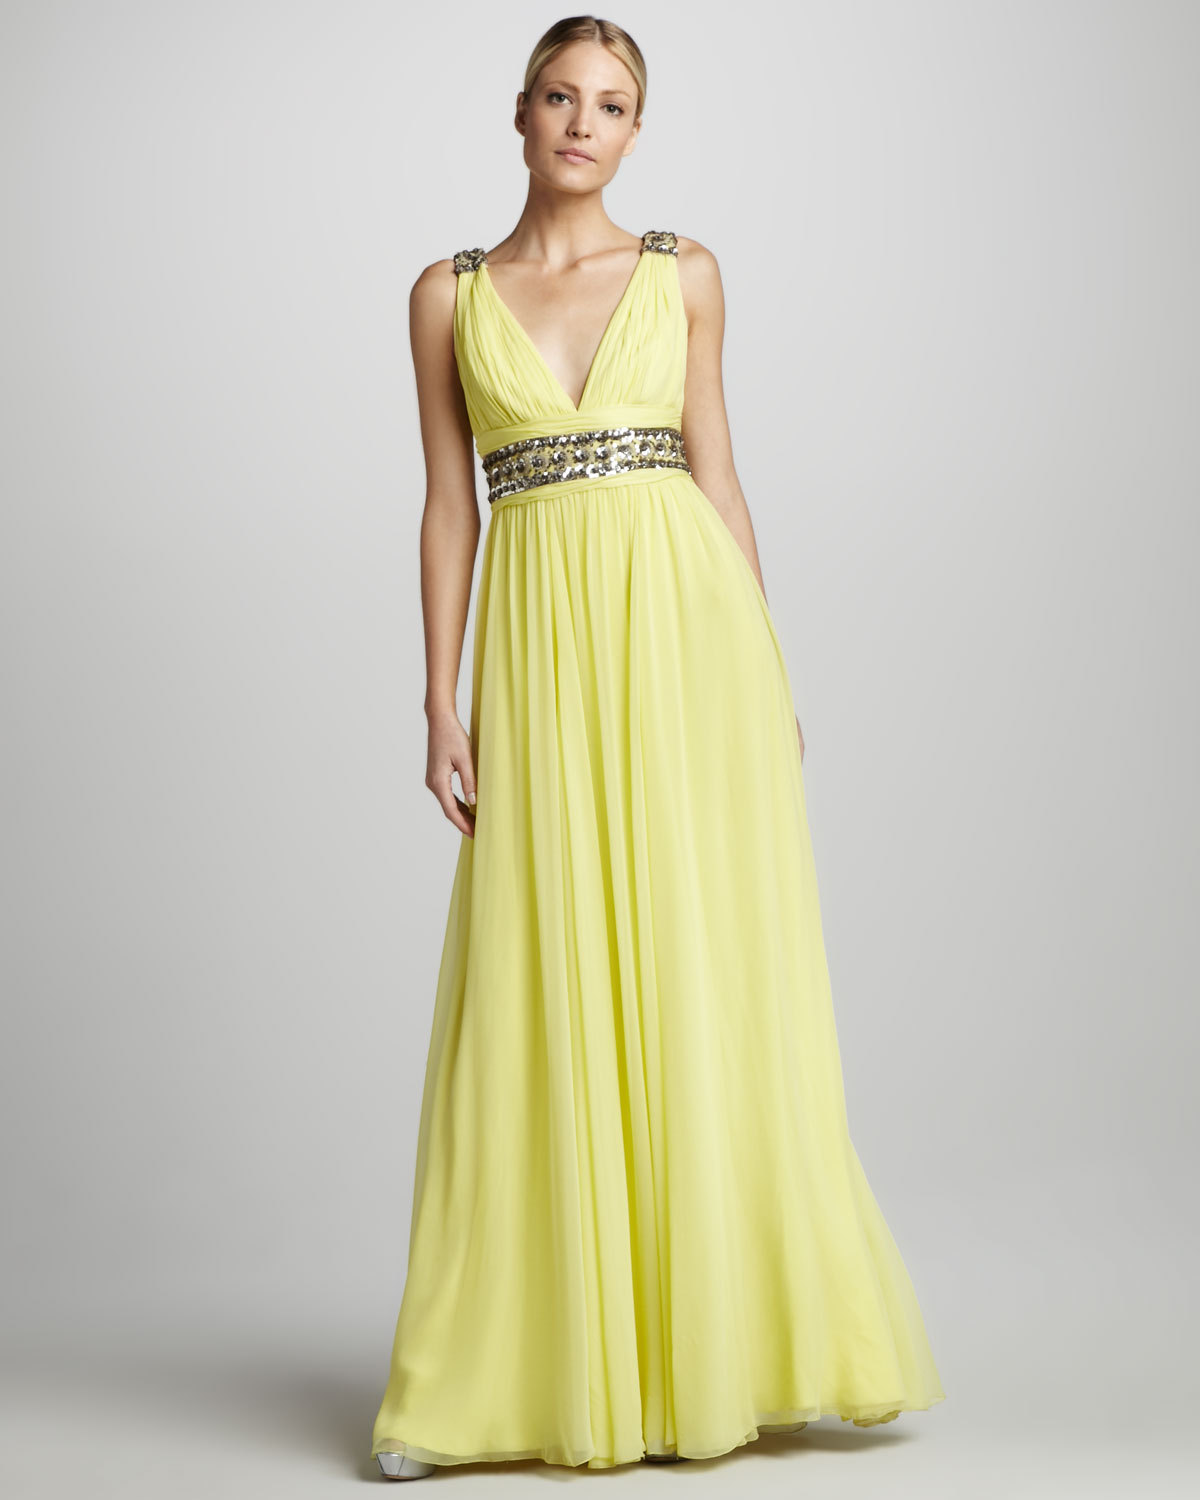 Yellow v neck bridesmaid dress for Dresses for wedding bridesmaid